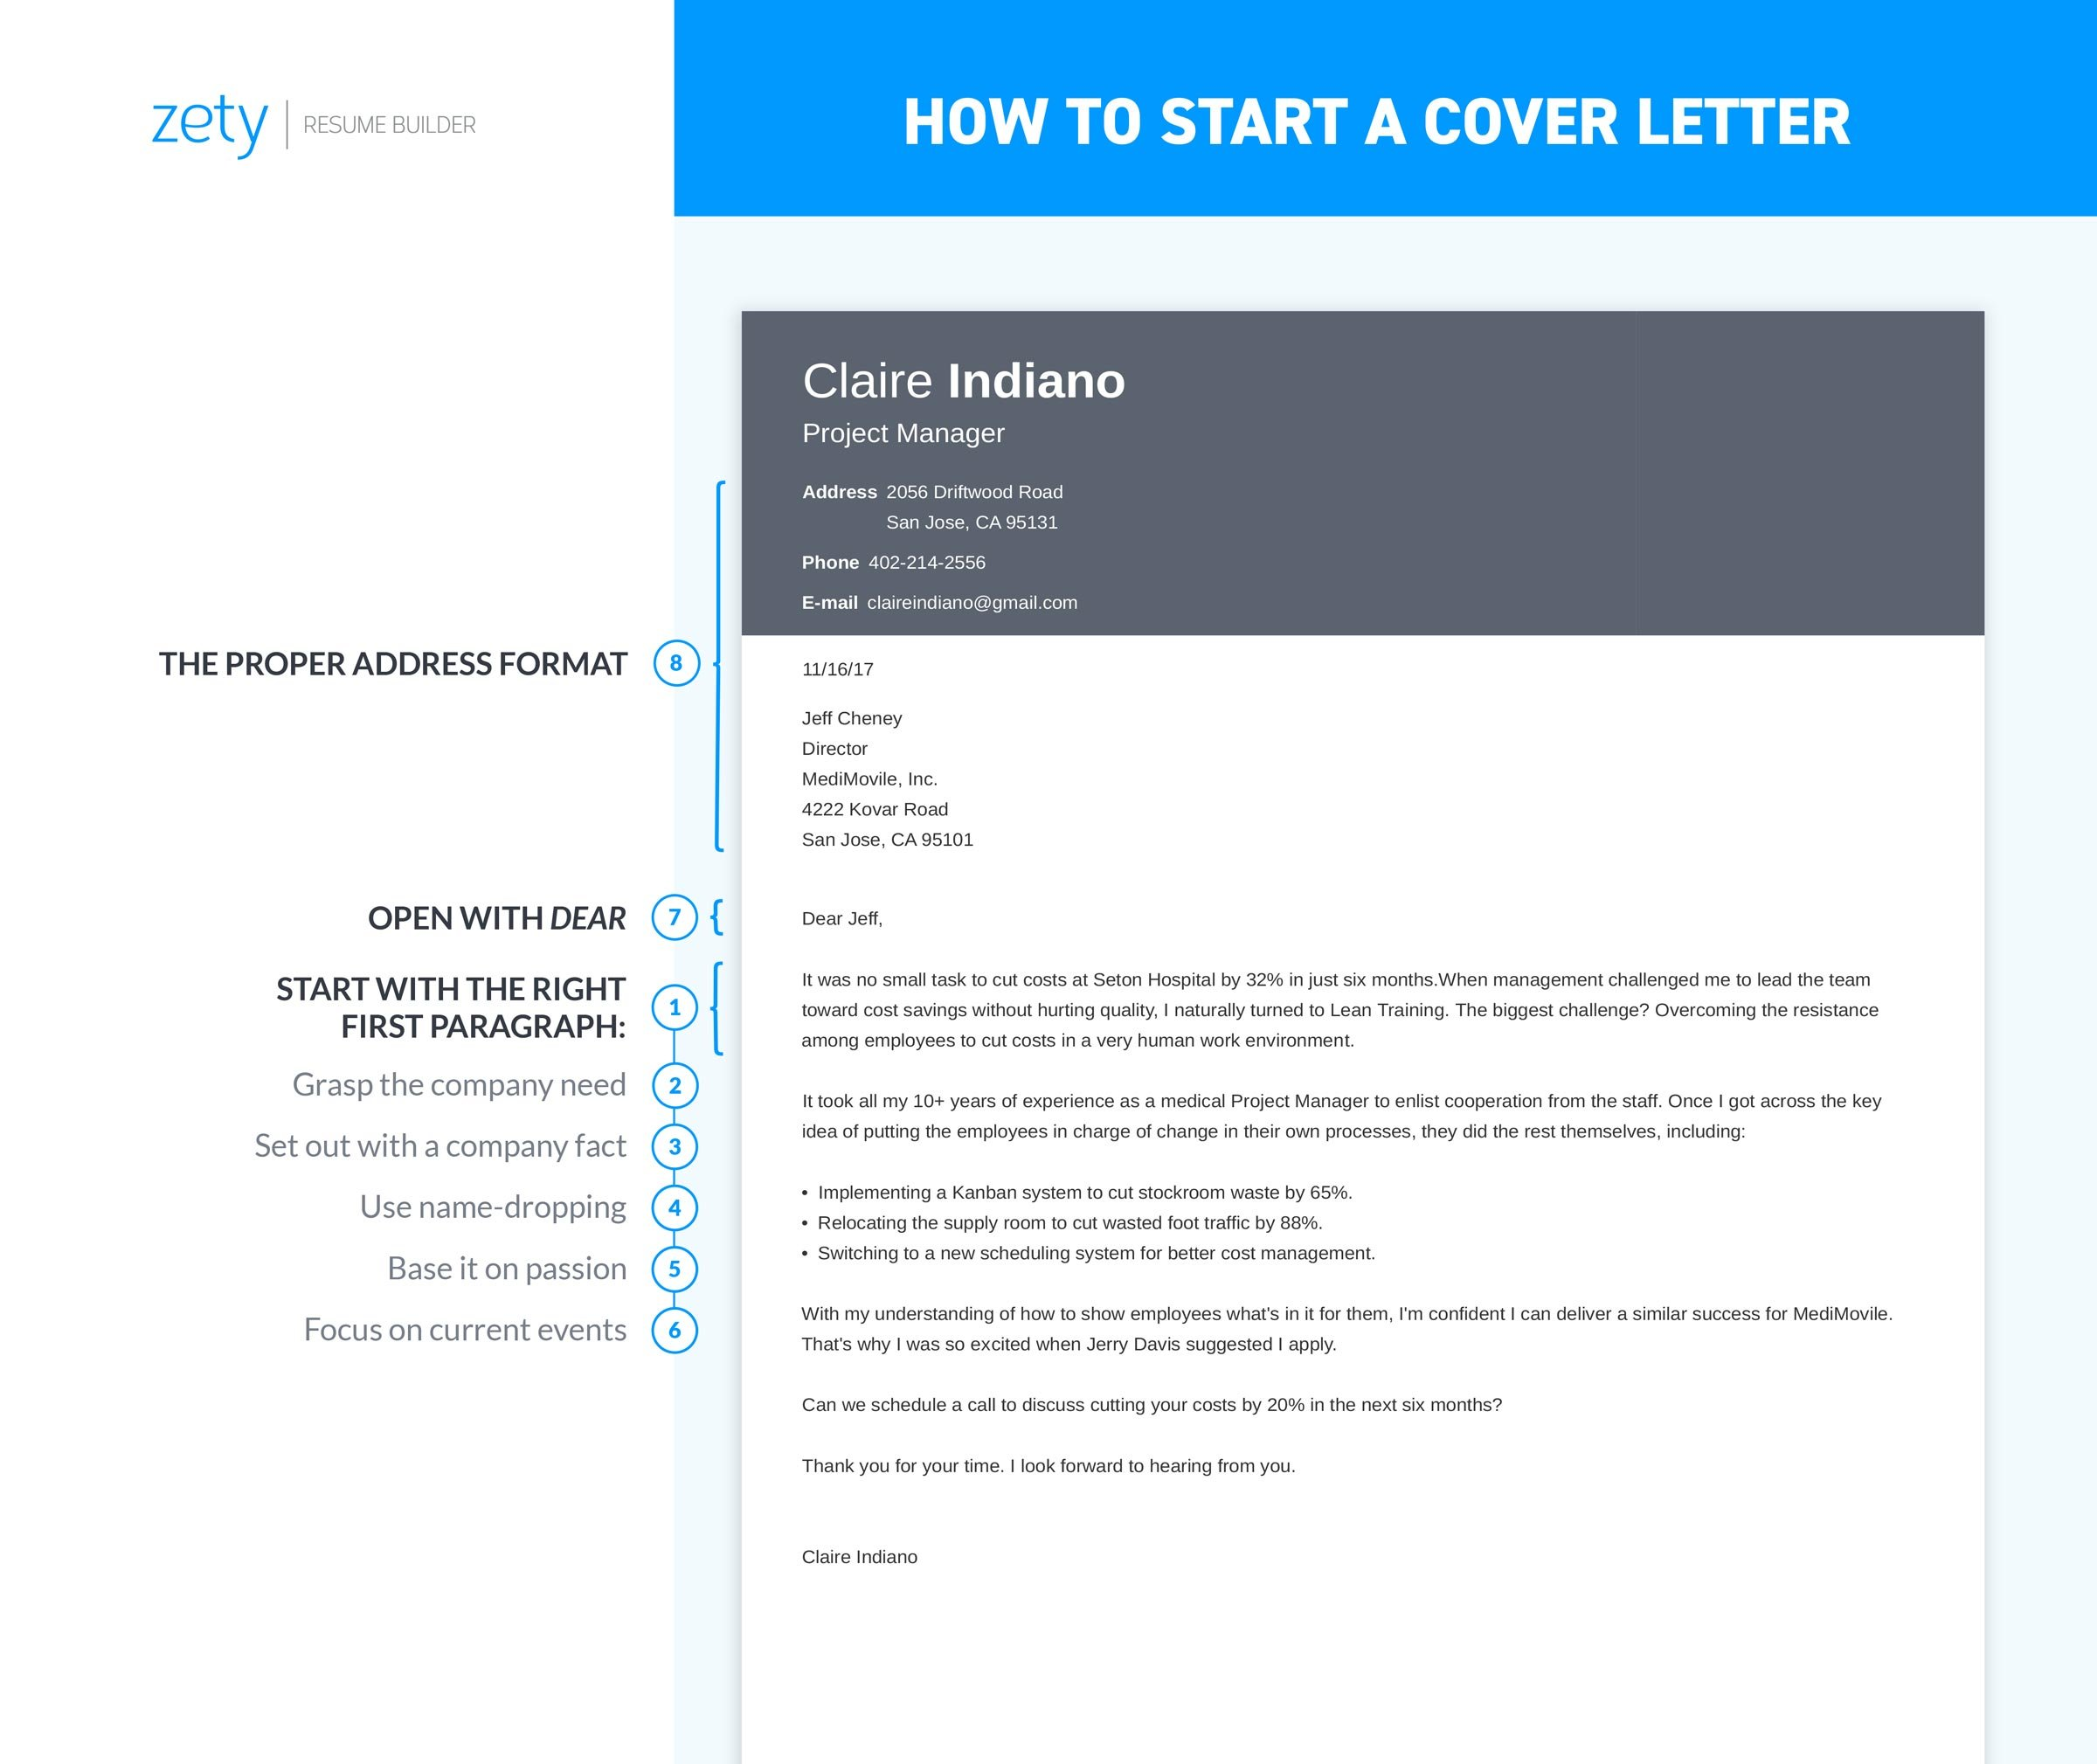 how to open a cover letter without a name - how to start a cover letter sample complete guide 20